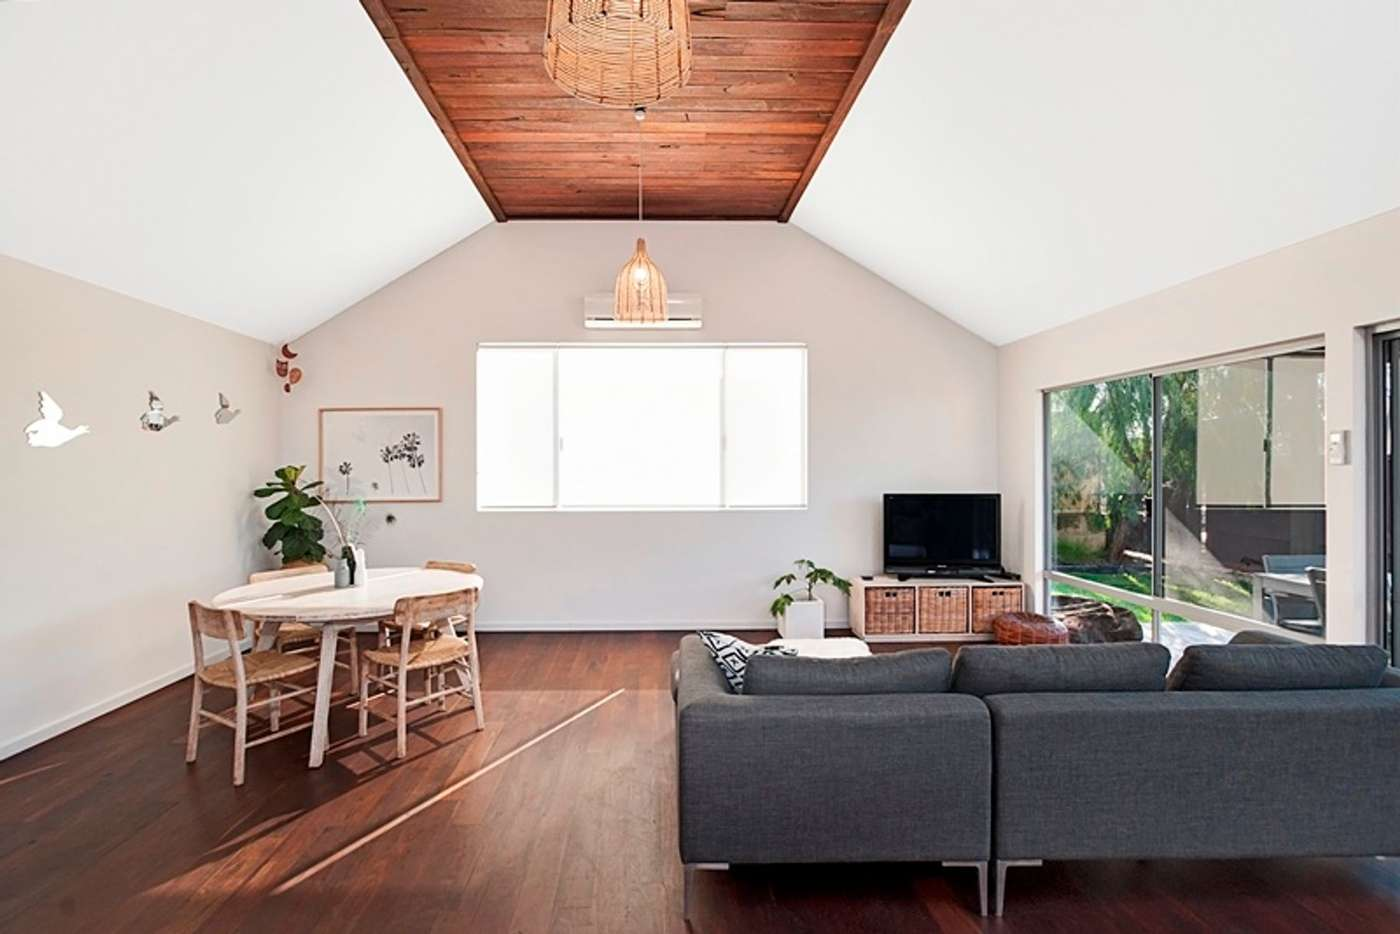 Sixth view of Homely house listing, 28 Prestwick Road, Dunsborough WA 6281